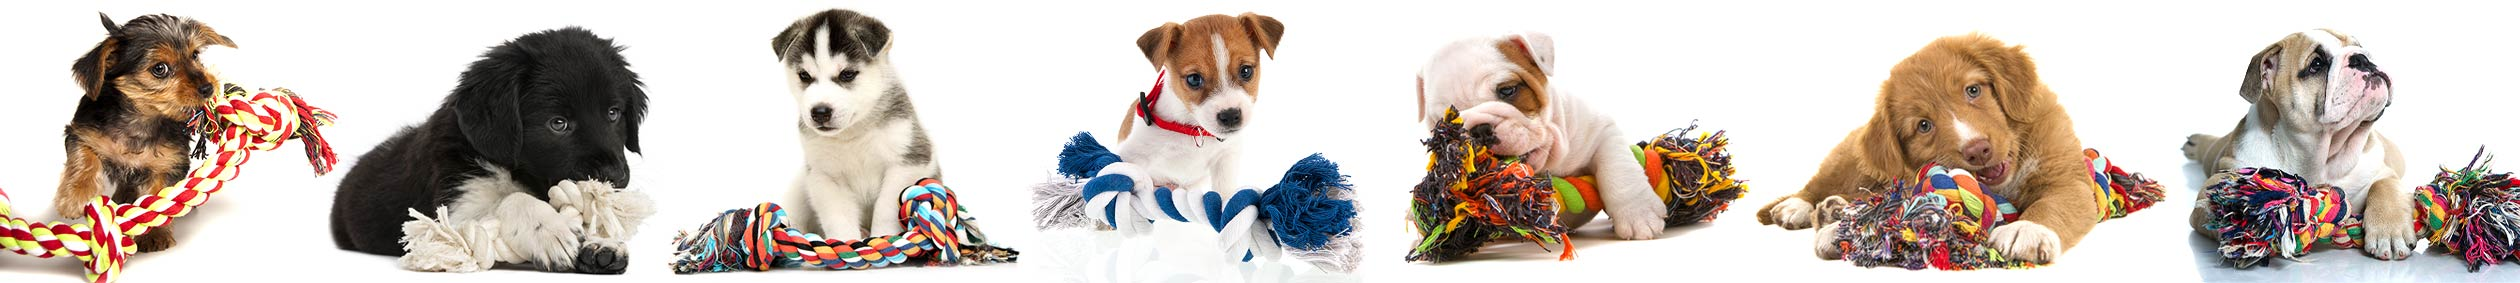 Cute dogs and puppies playing and chewing on rope toys